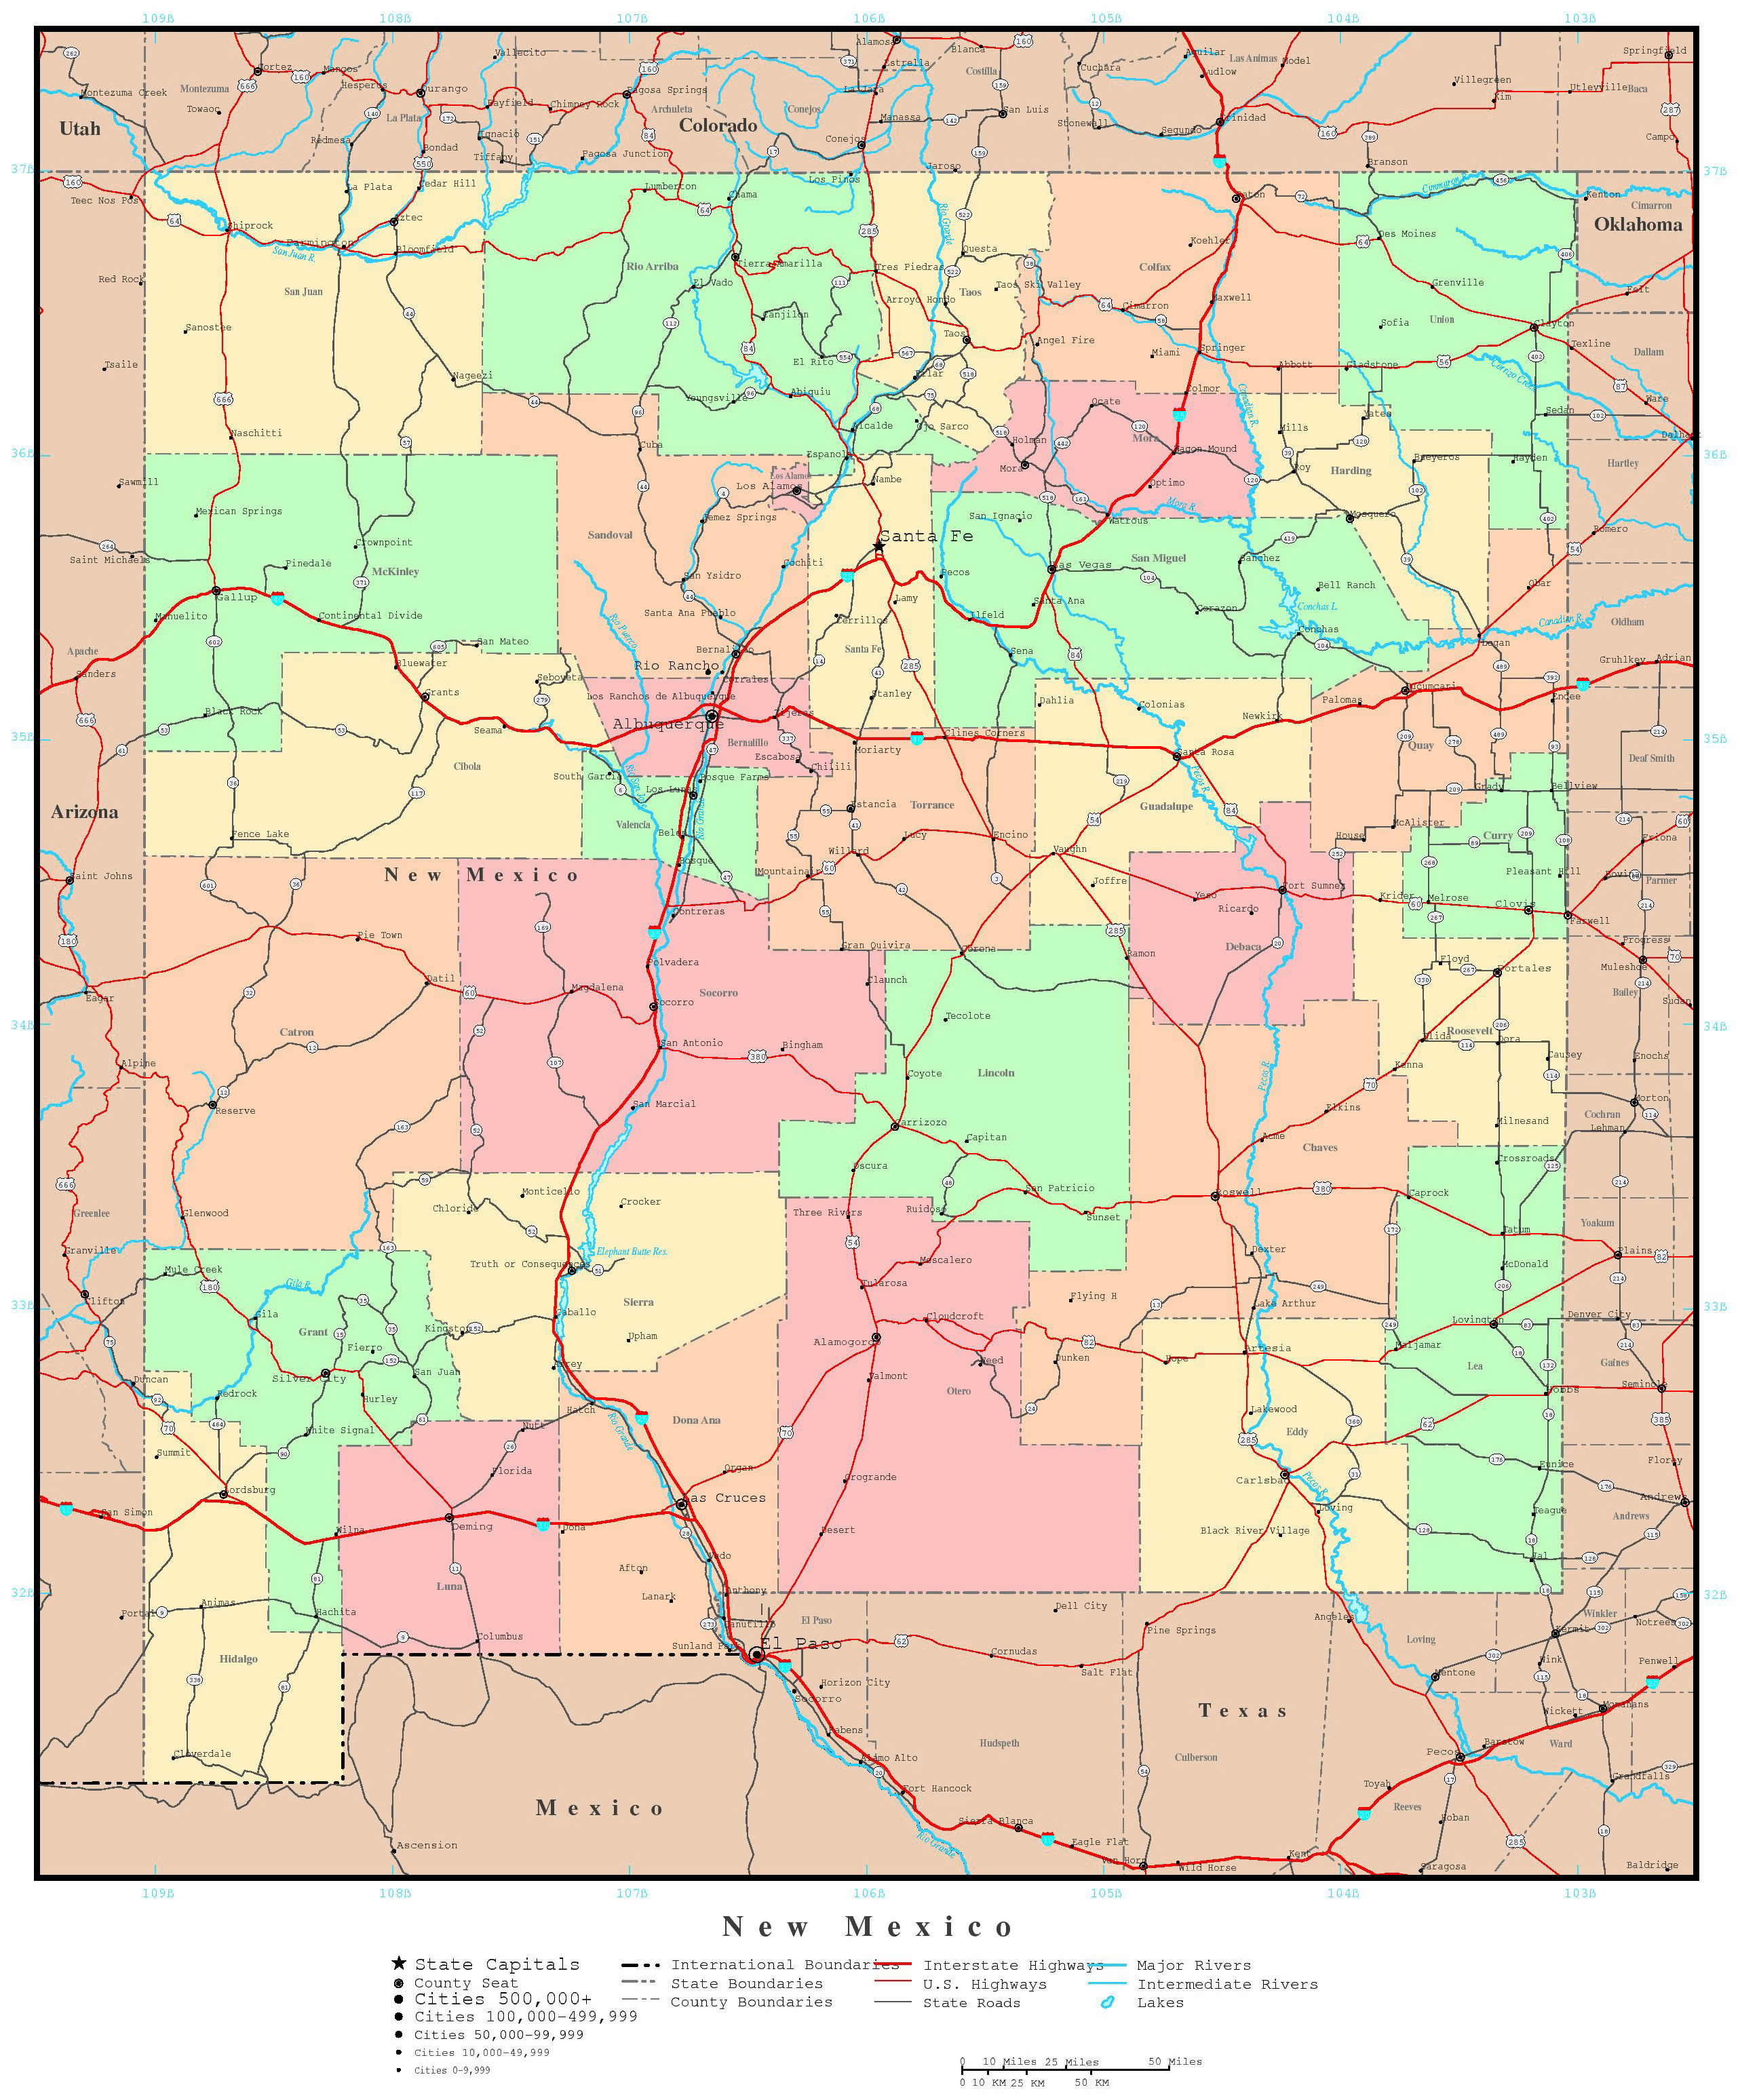 Large Detailed Administrative Map Of New Mexico State With